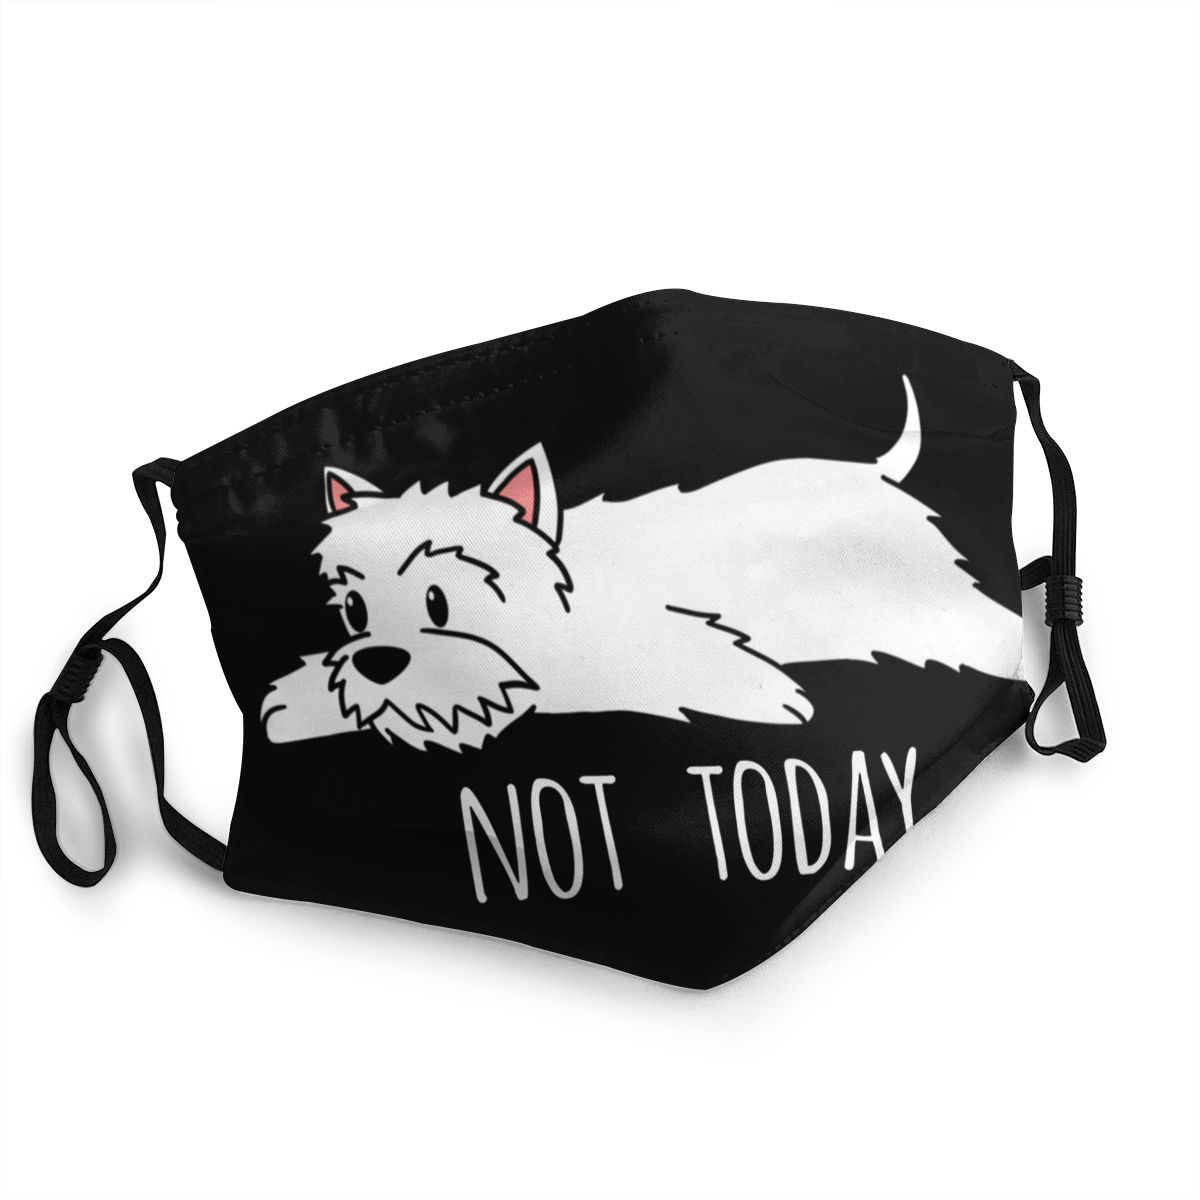 Funny Not Today Westie Dog Reusable Mouth Face Mask Anti Haze Dustproof Protection Cover Respirator